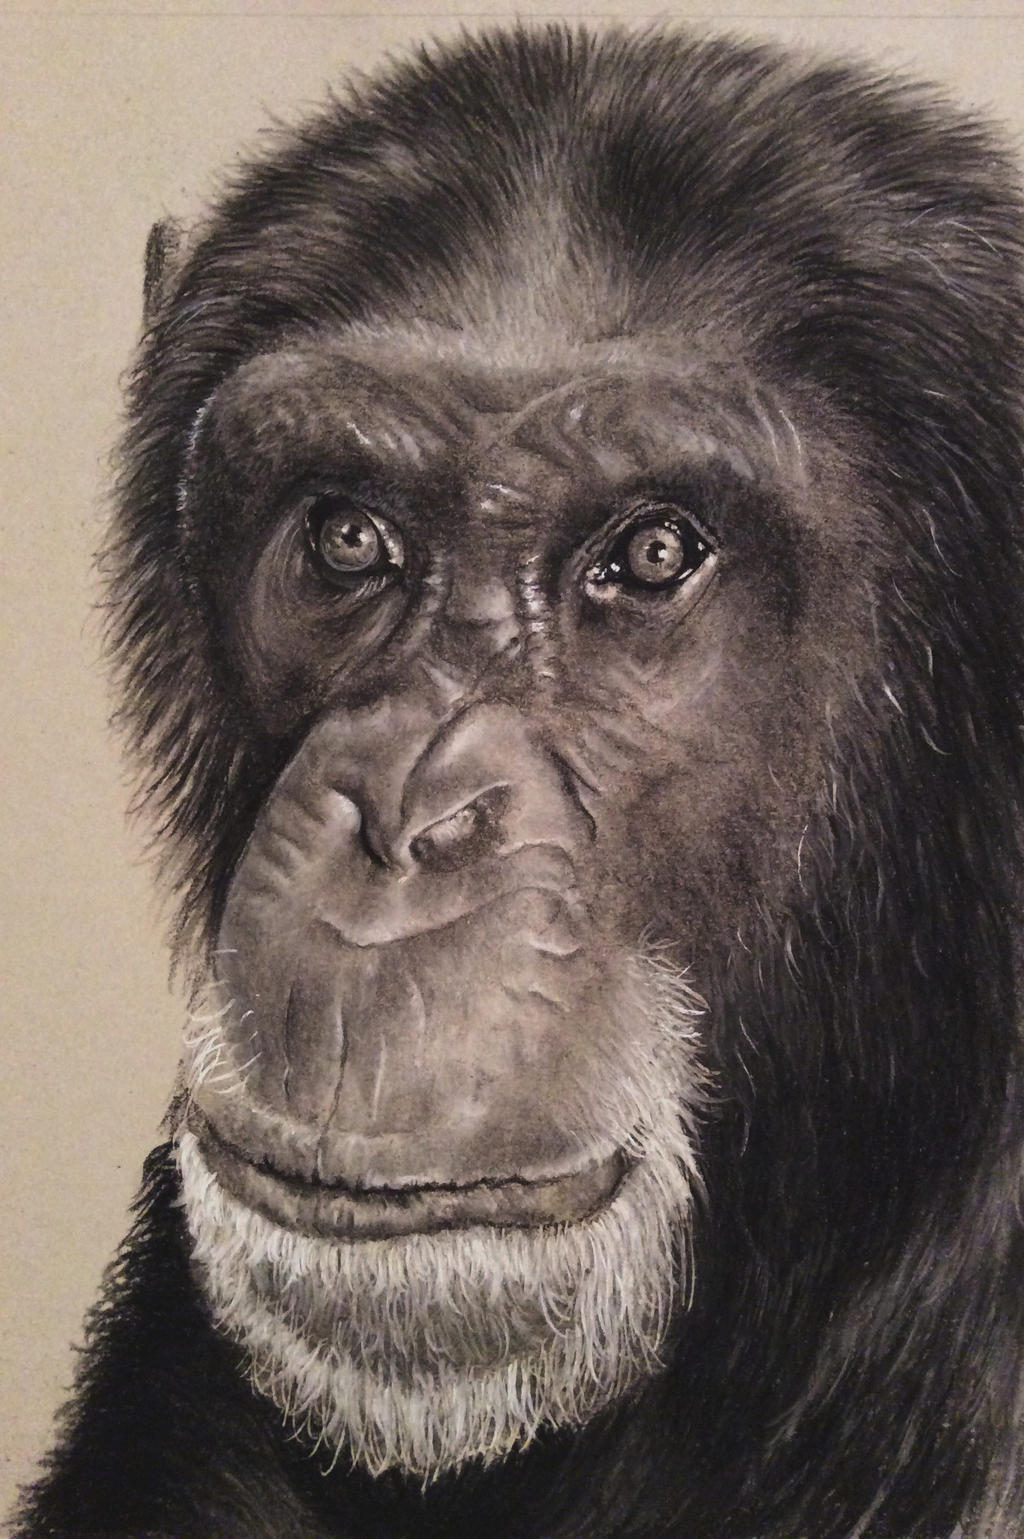 chimpanzee charcoal drawing by donnabe on deviantART